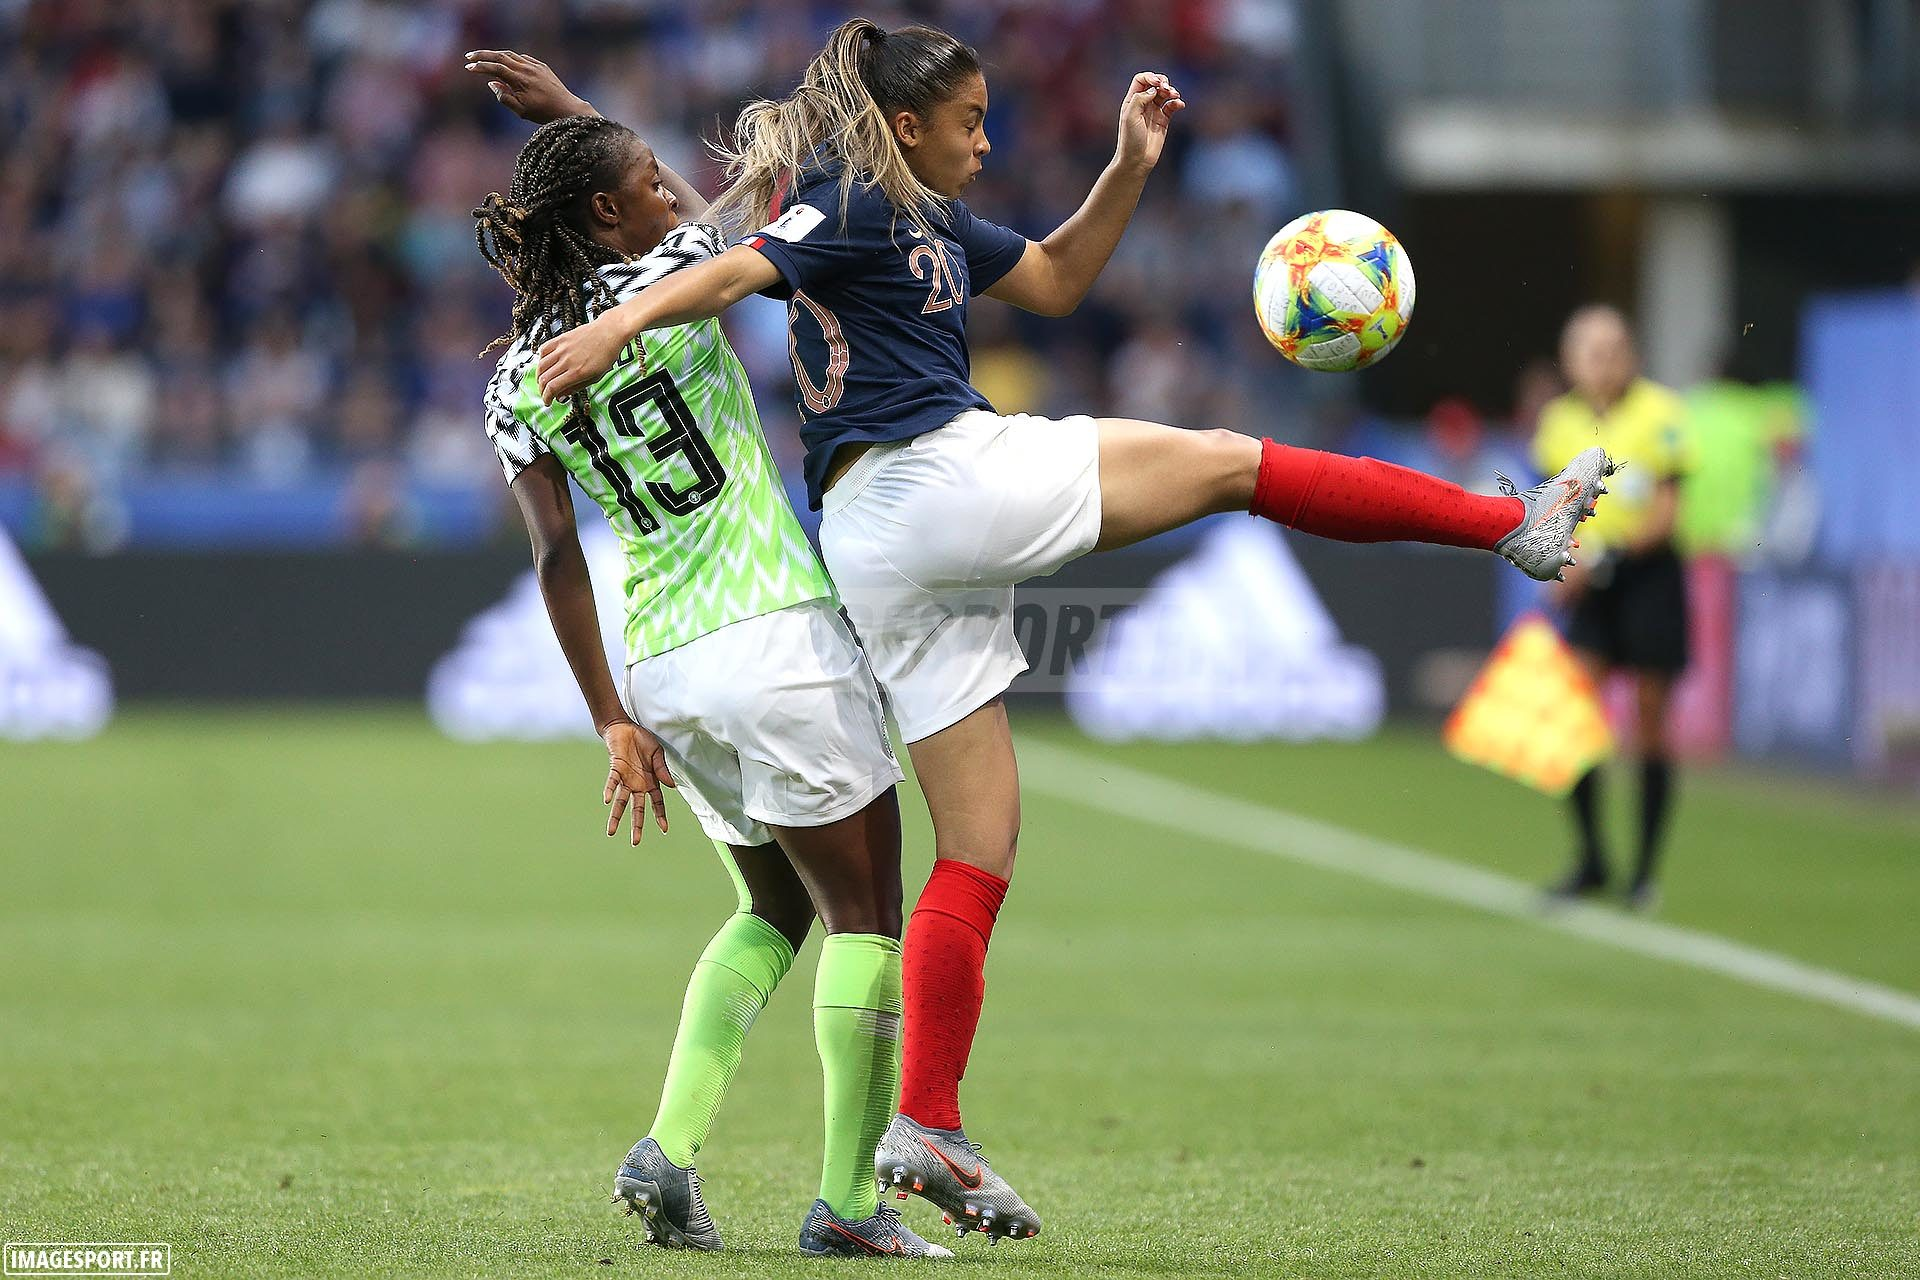 coupe-du-monde-19-nigeria-france_12